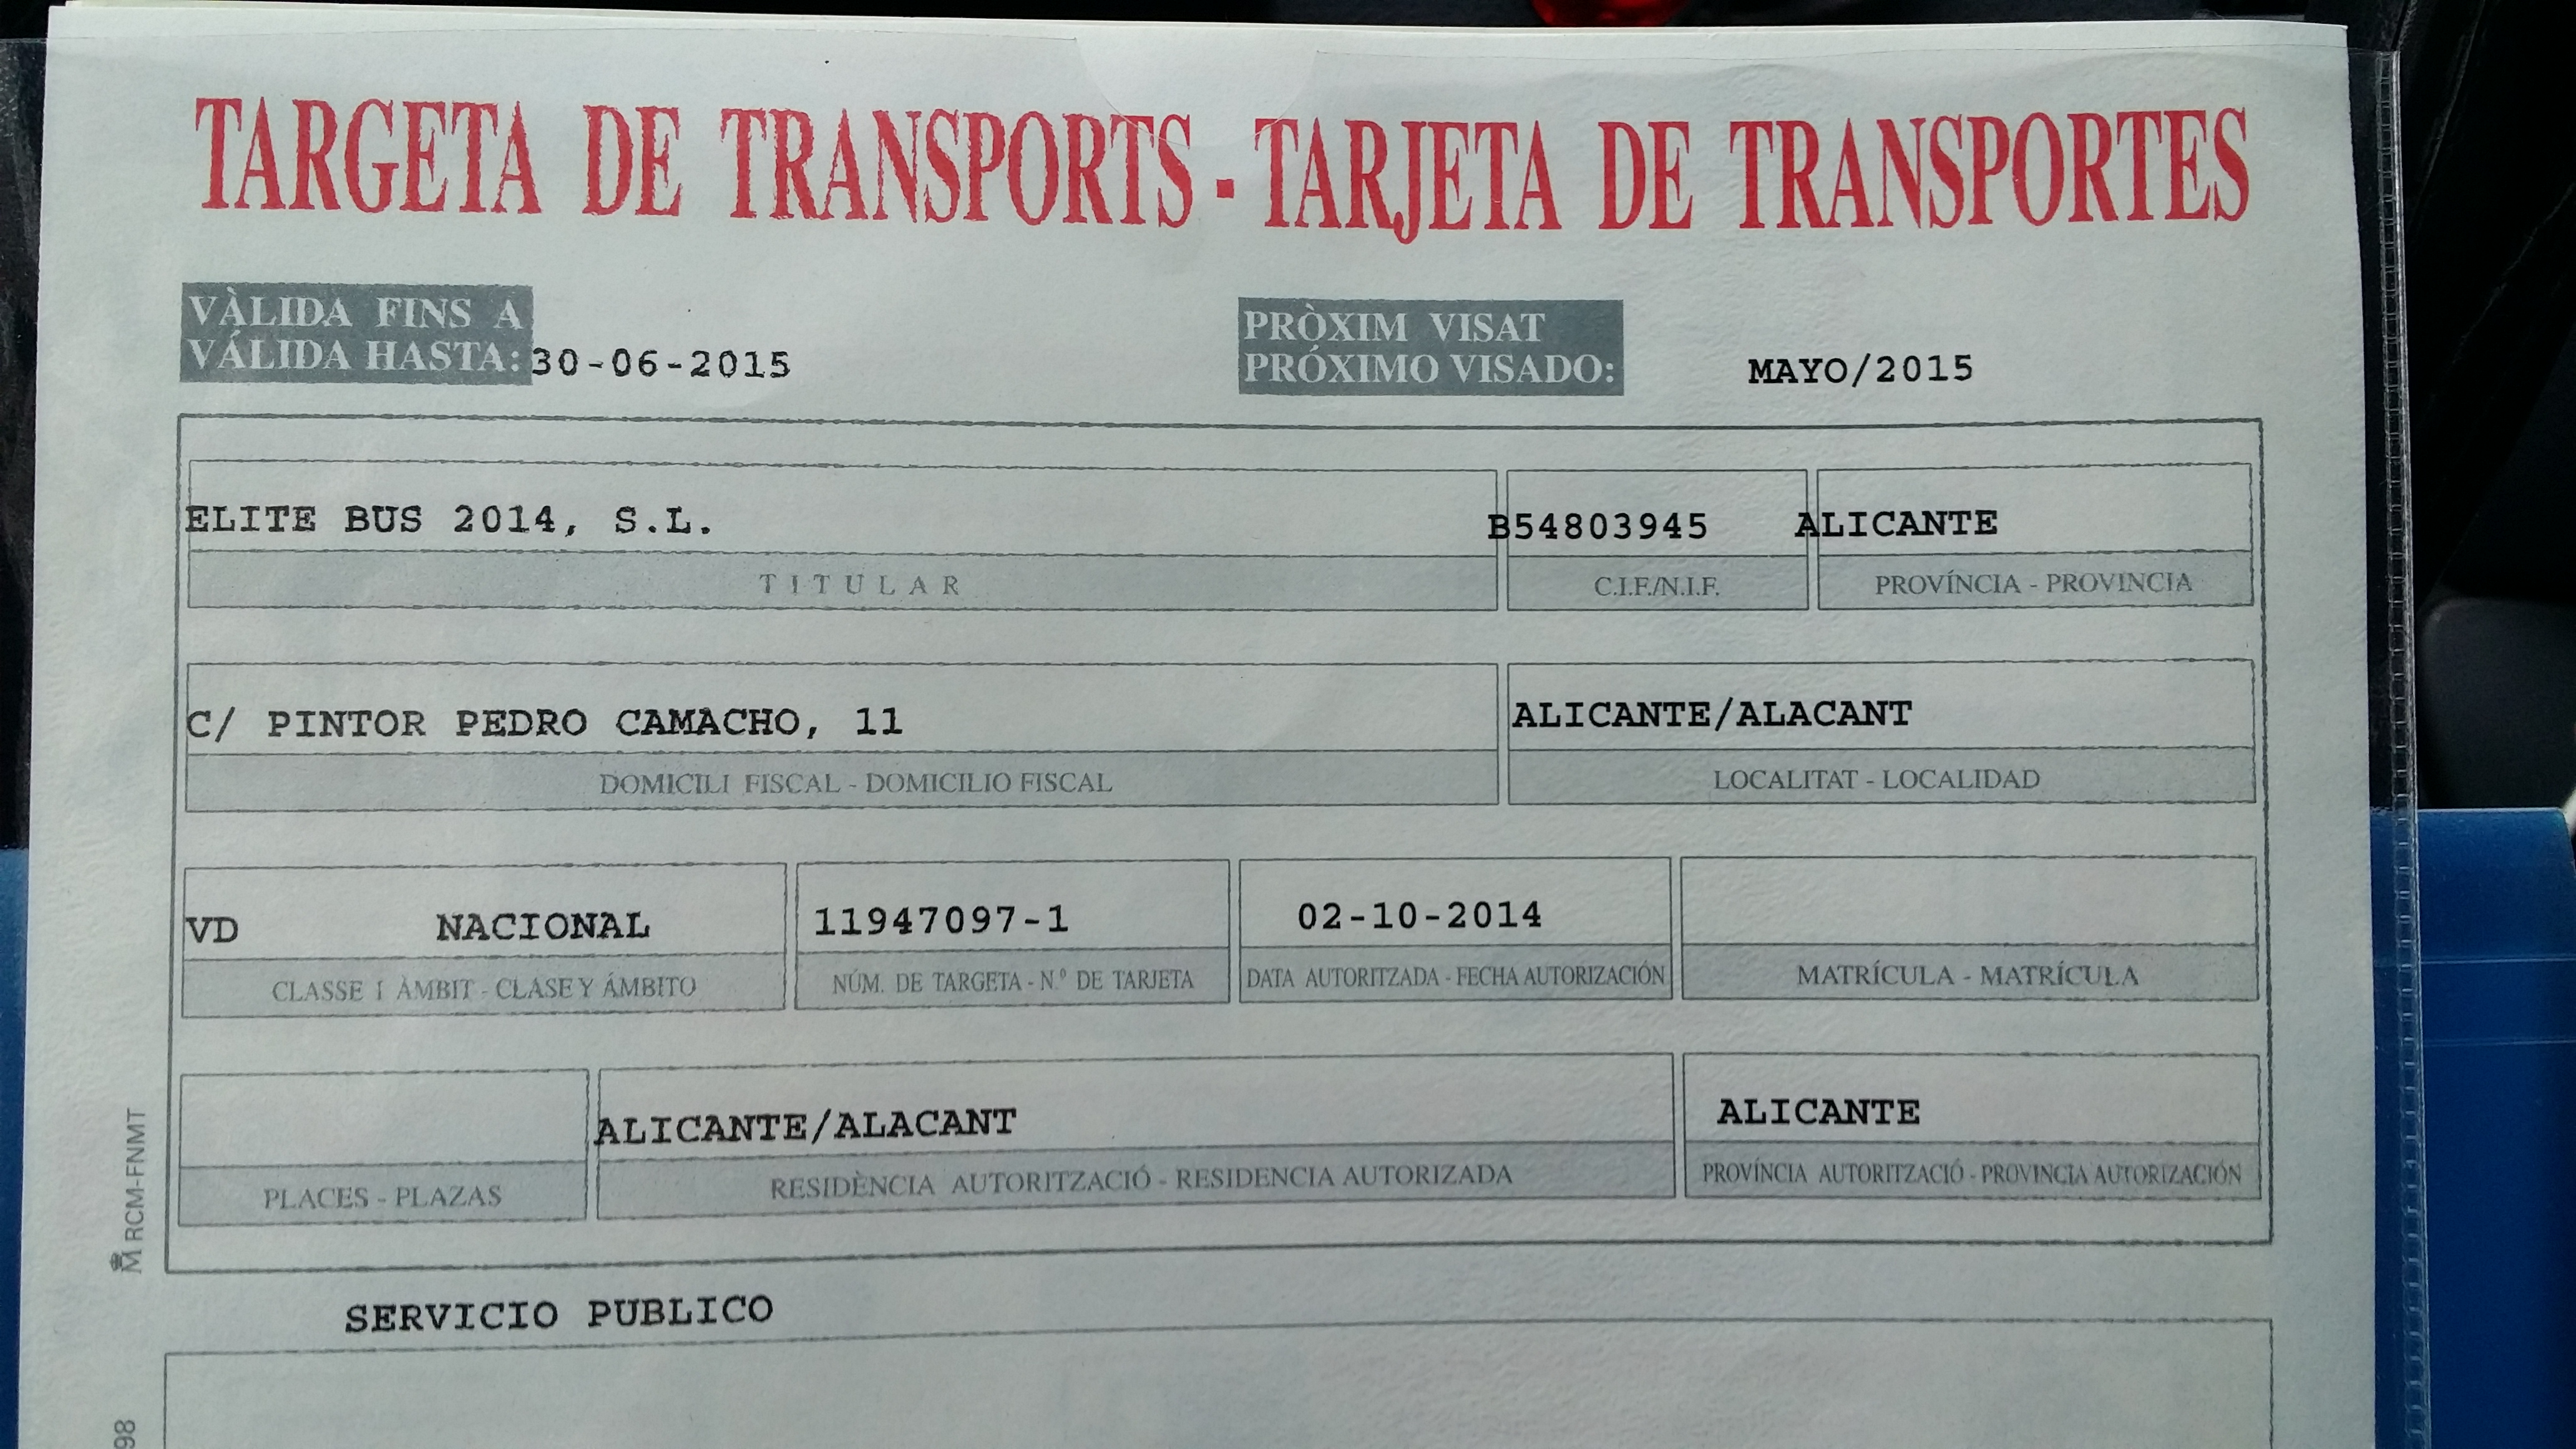 Taxi service Alicante transport licence